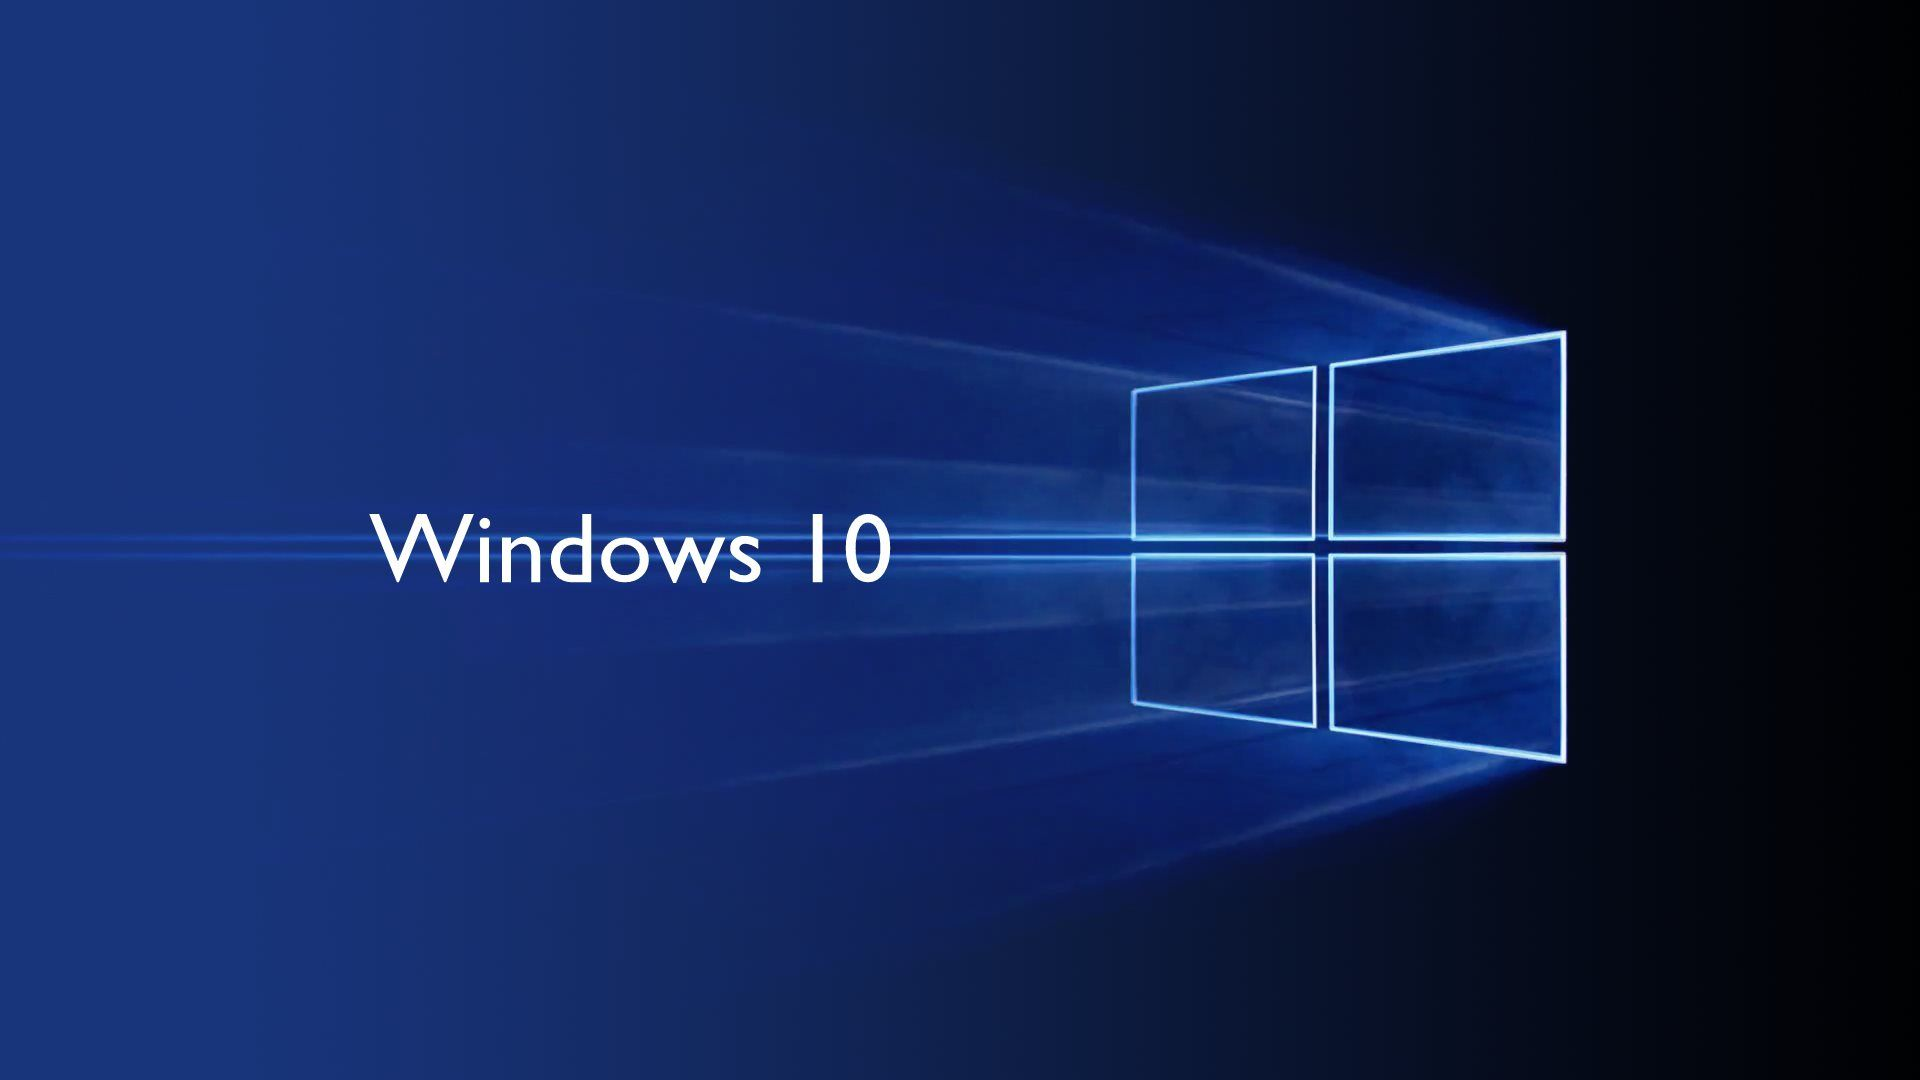 Windows 10 Hd wallpaper for pc